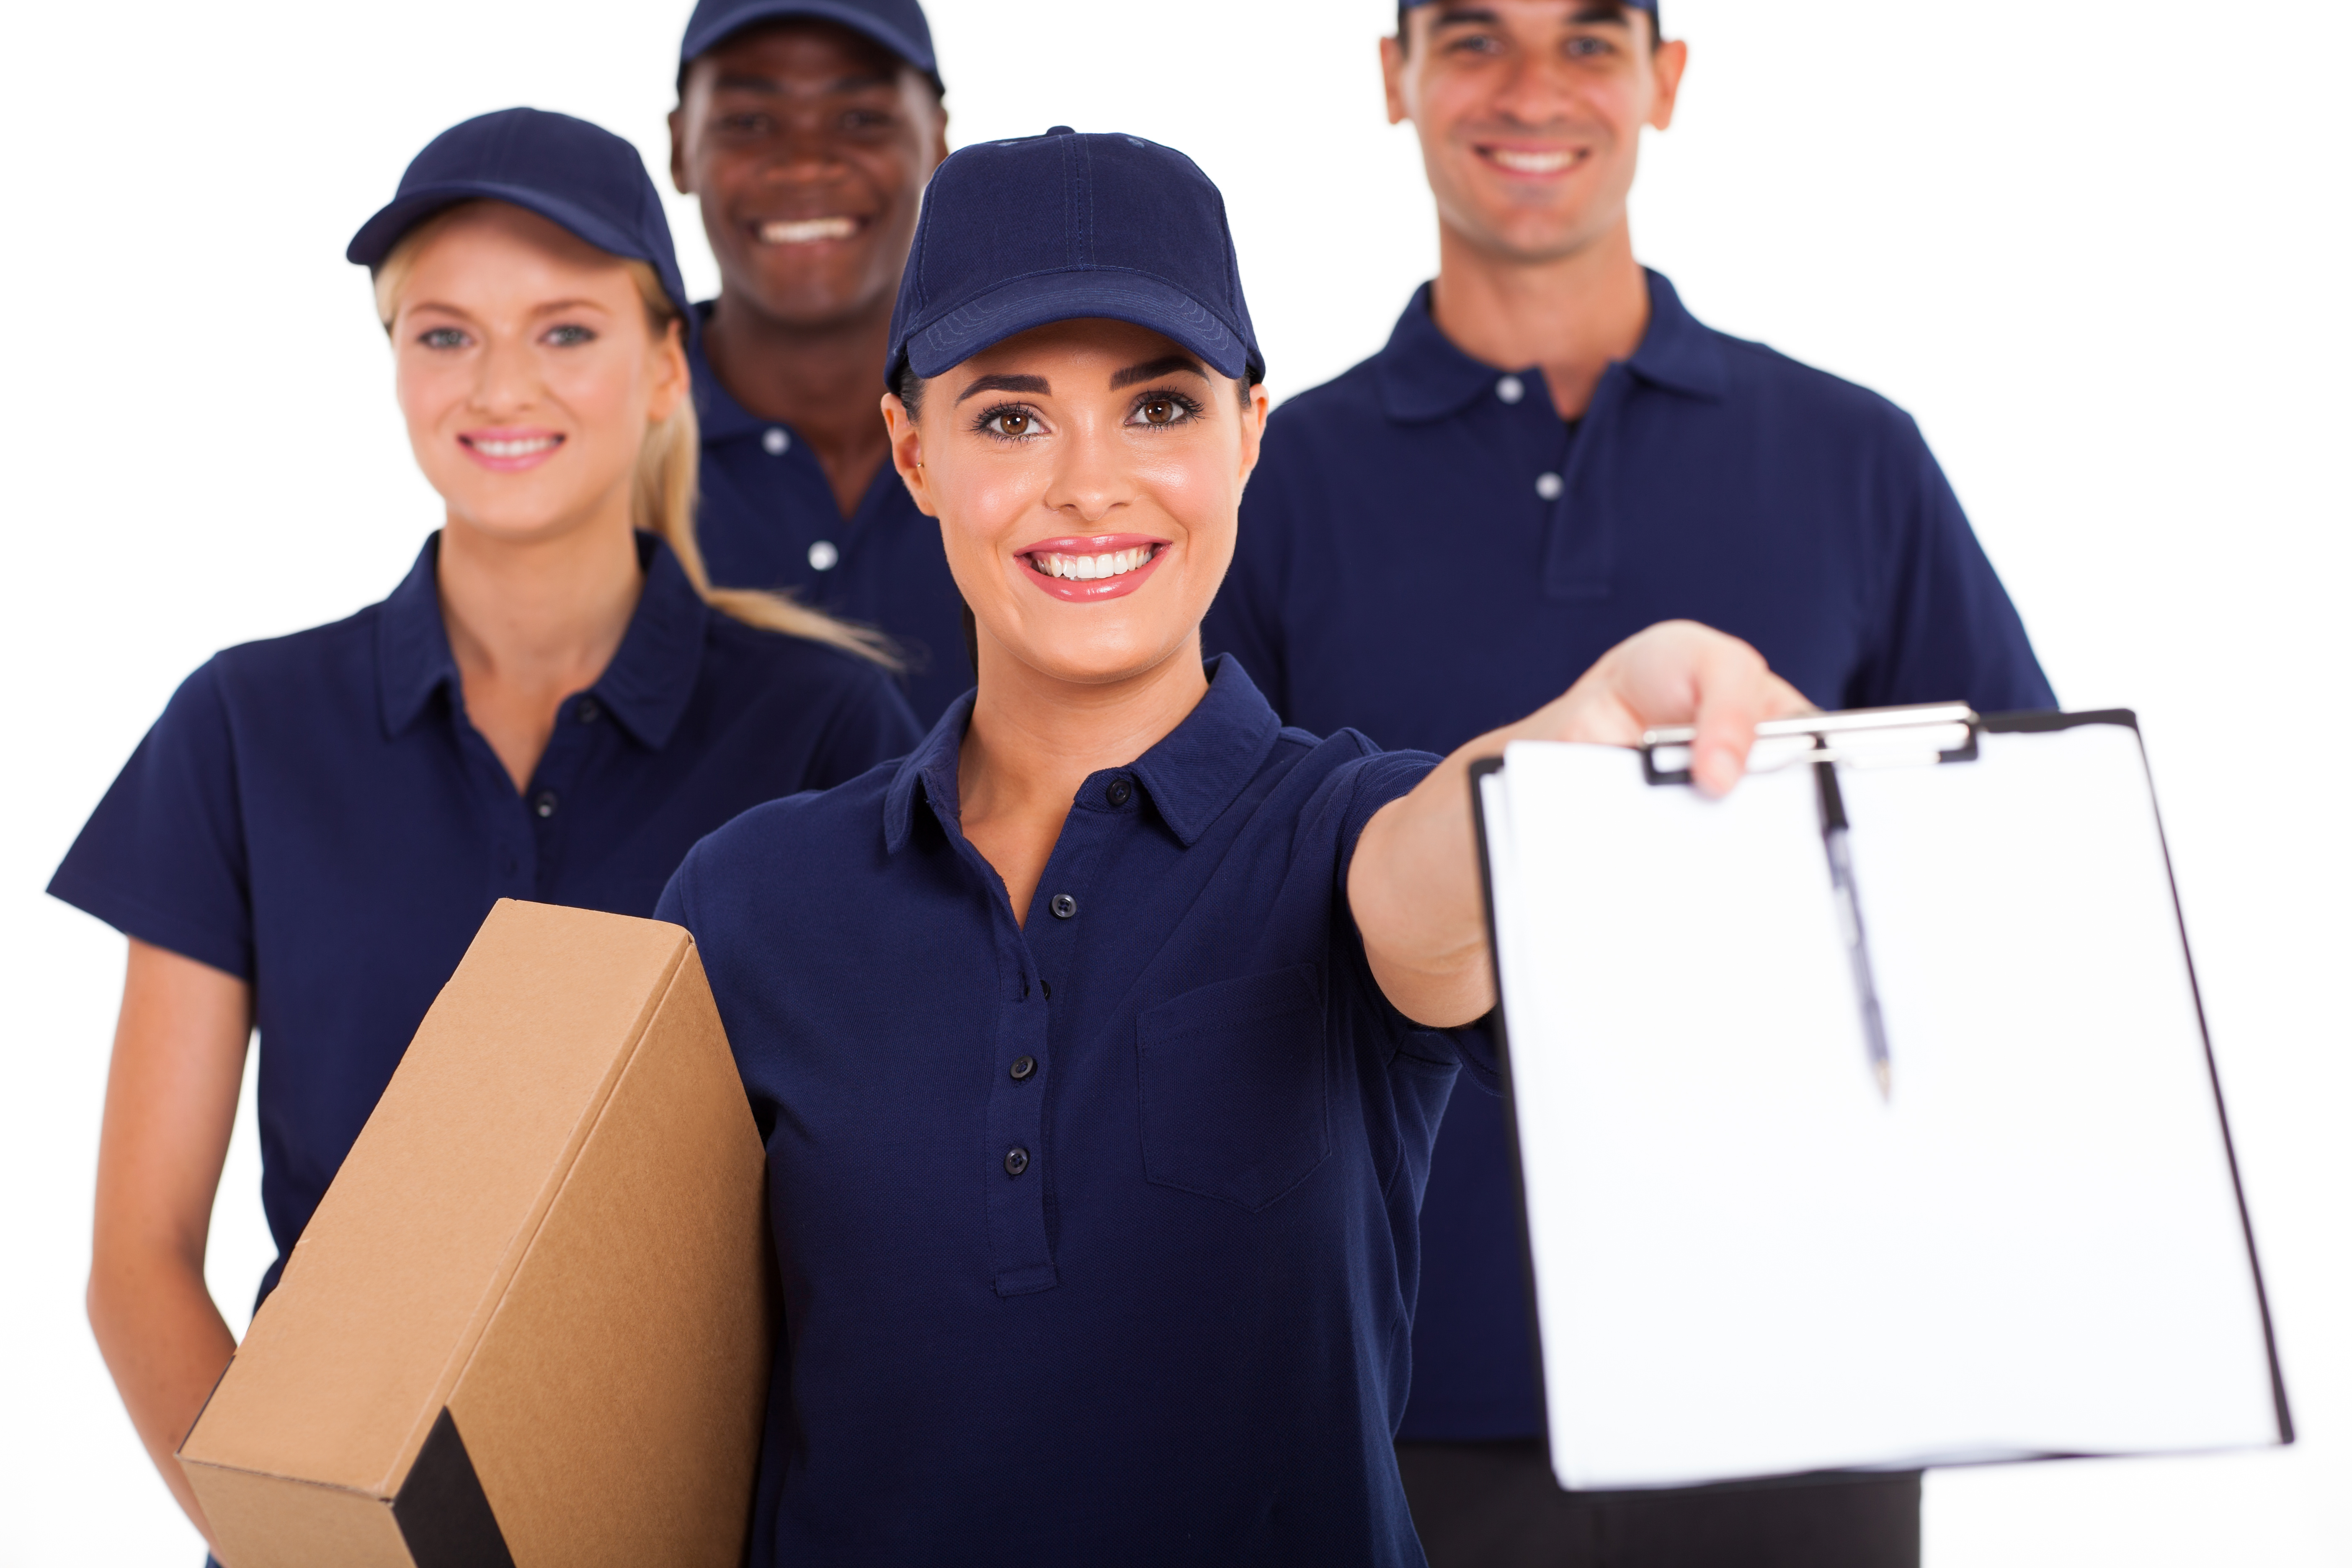 International Parcel Delivery Service Leicester